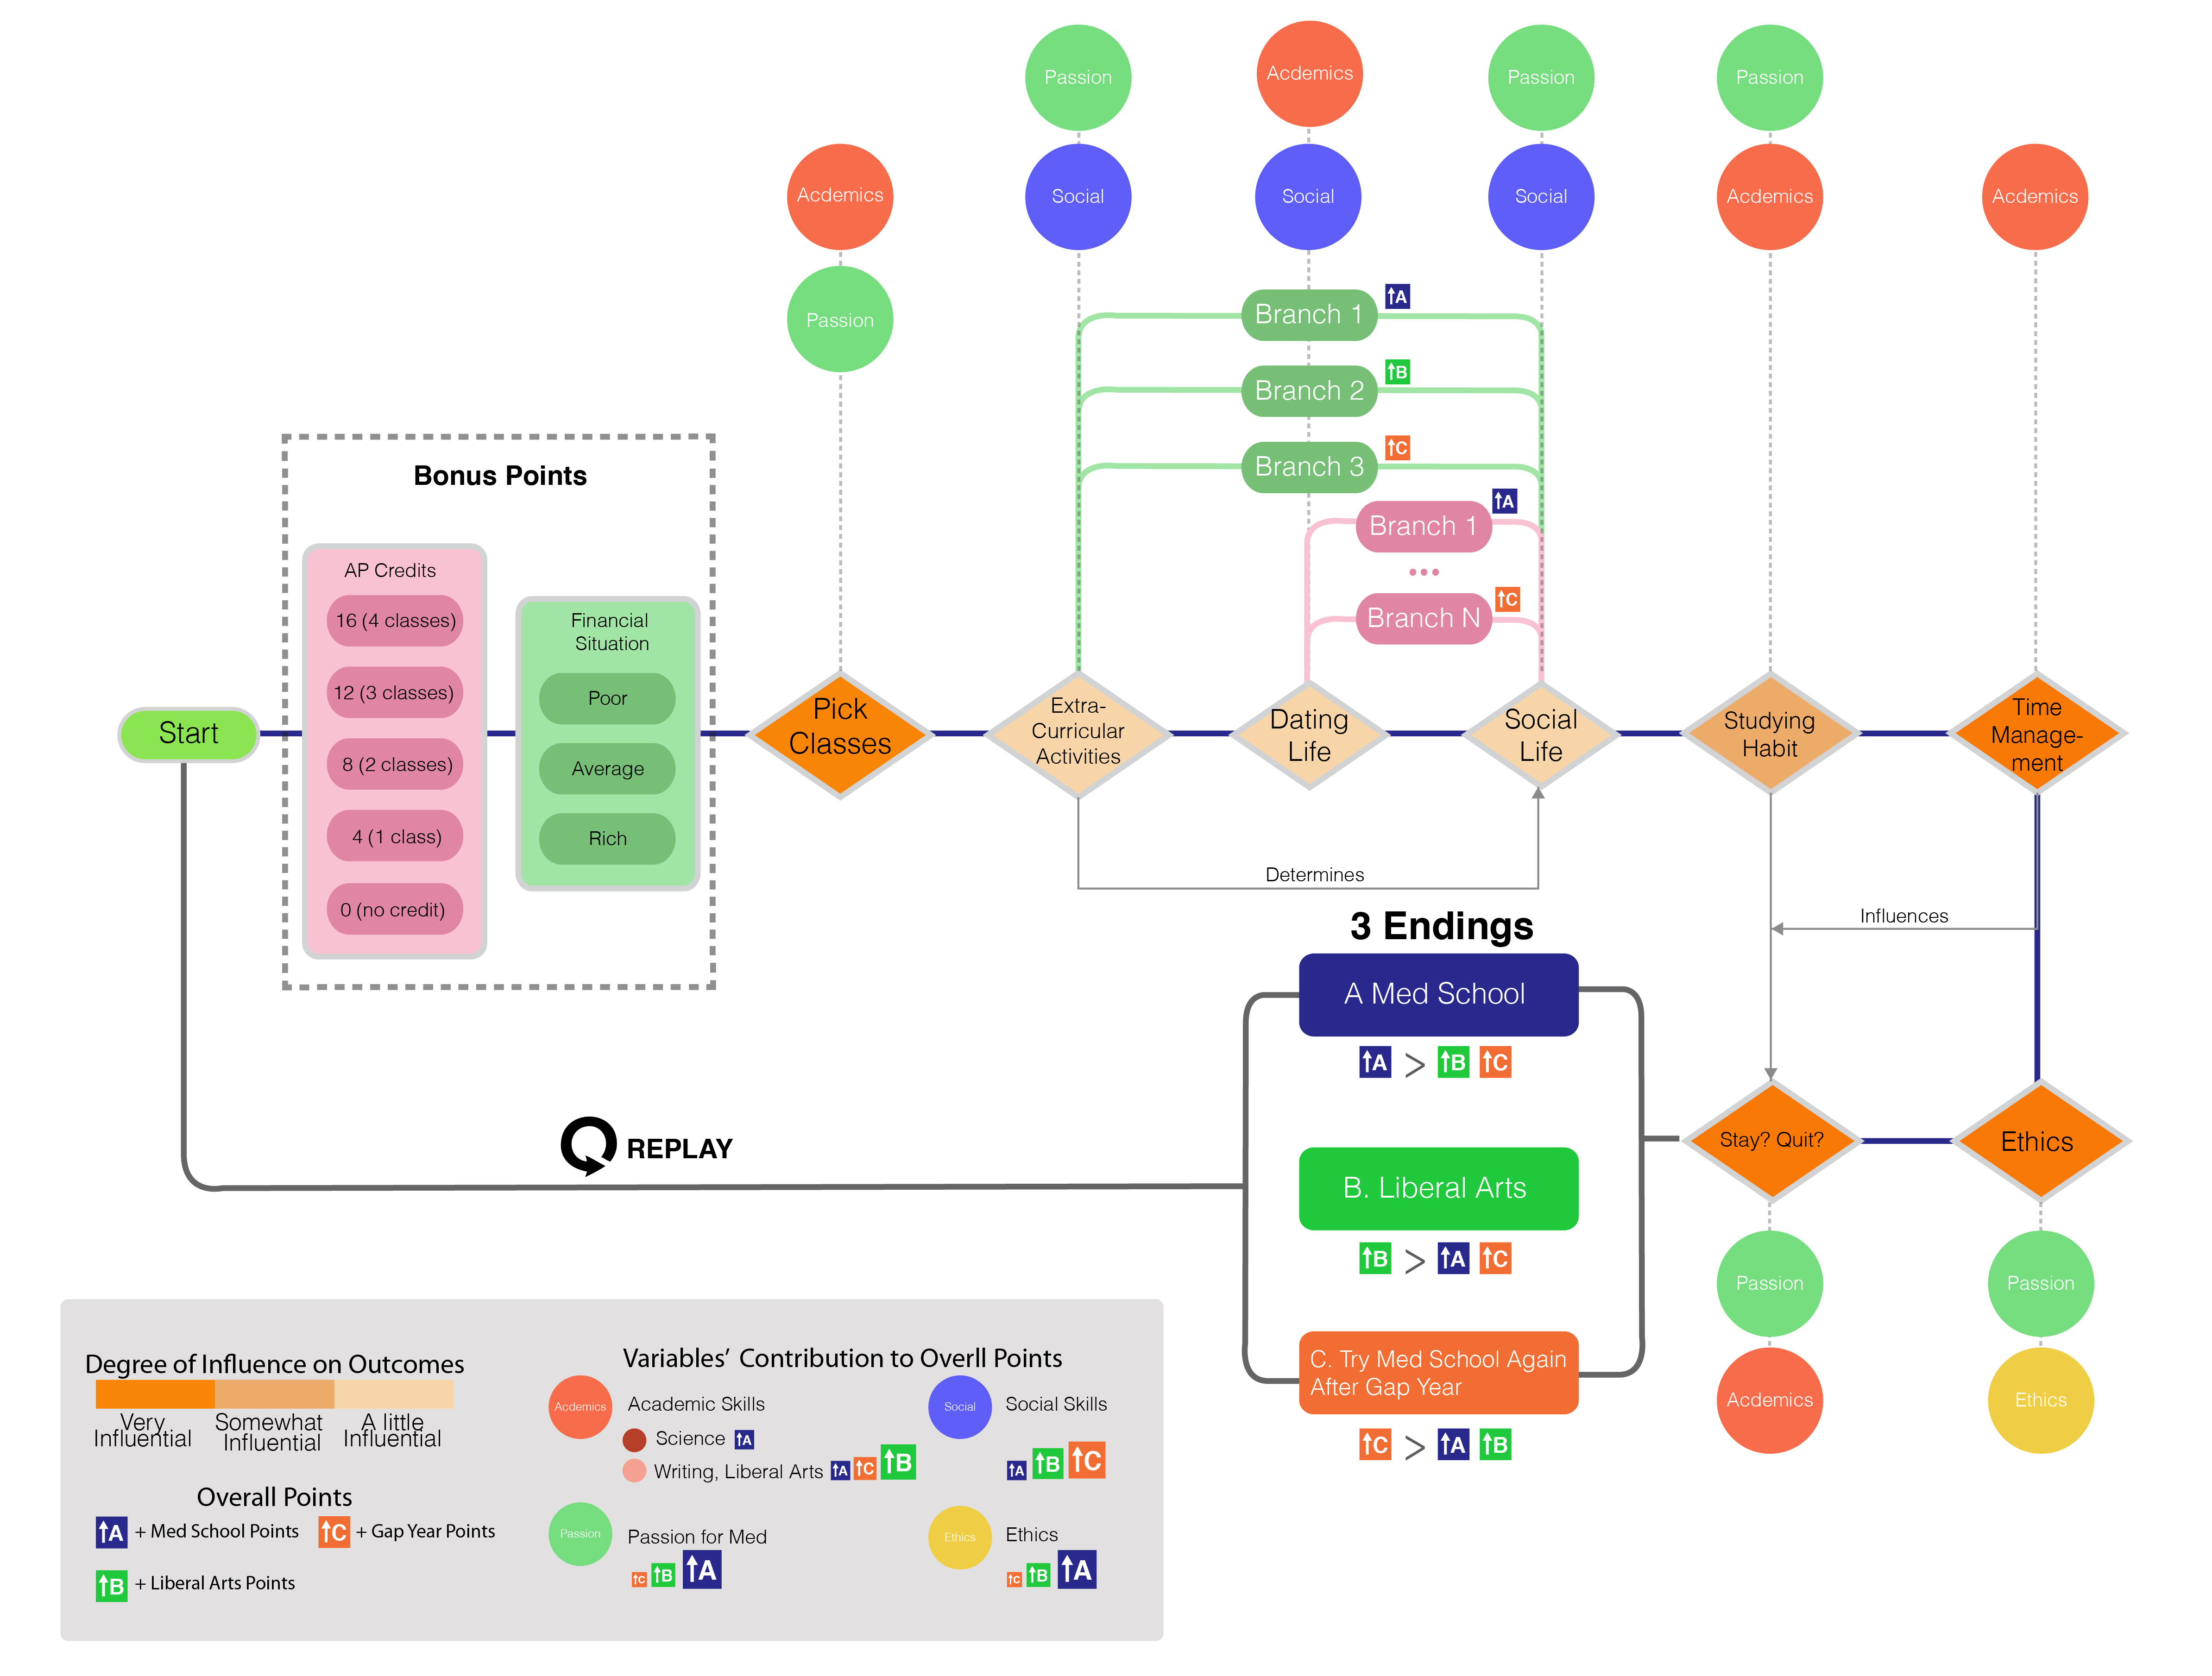 Will i go to med school simulation game lisa li design project 2 flow chart nvjuhfo Gallery